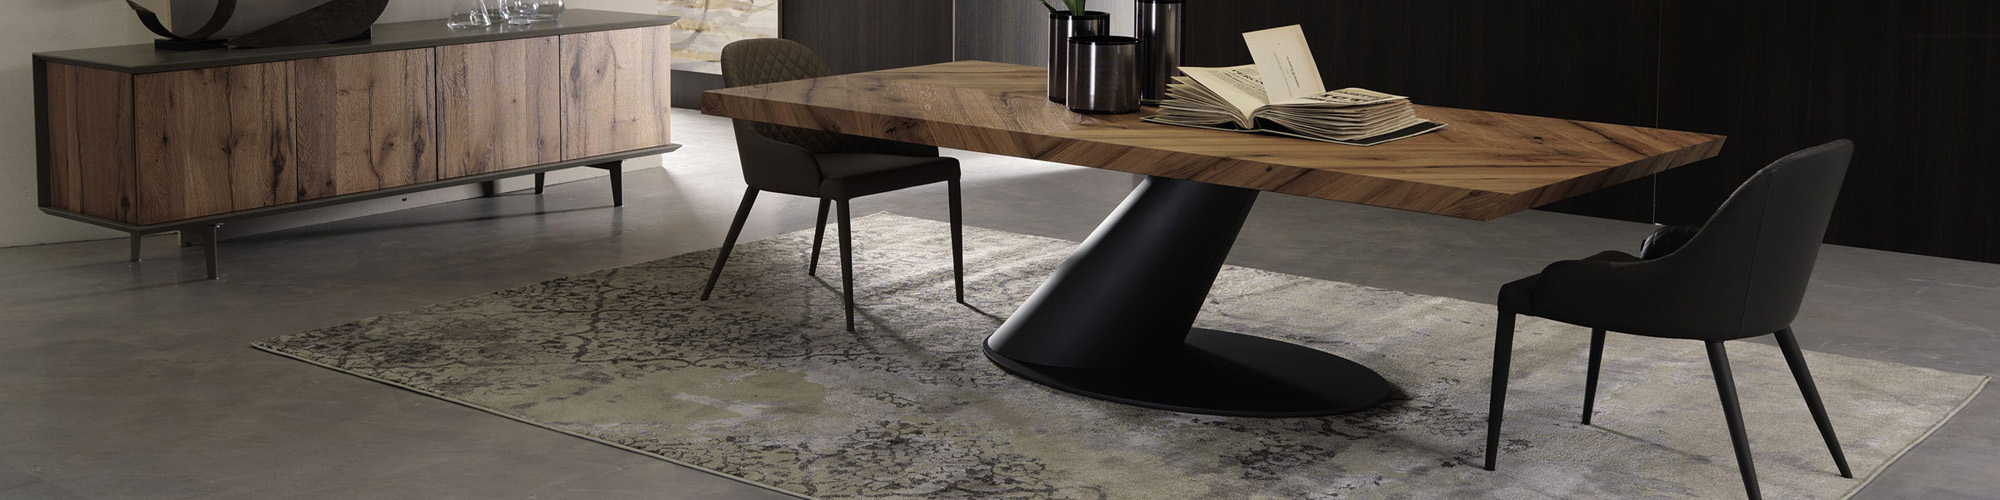 Ozzio Italia Furniture